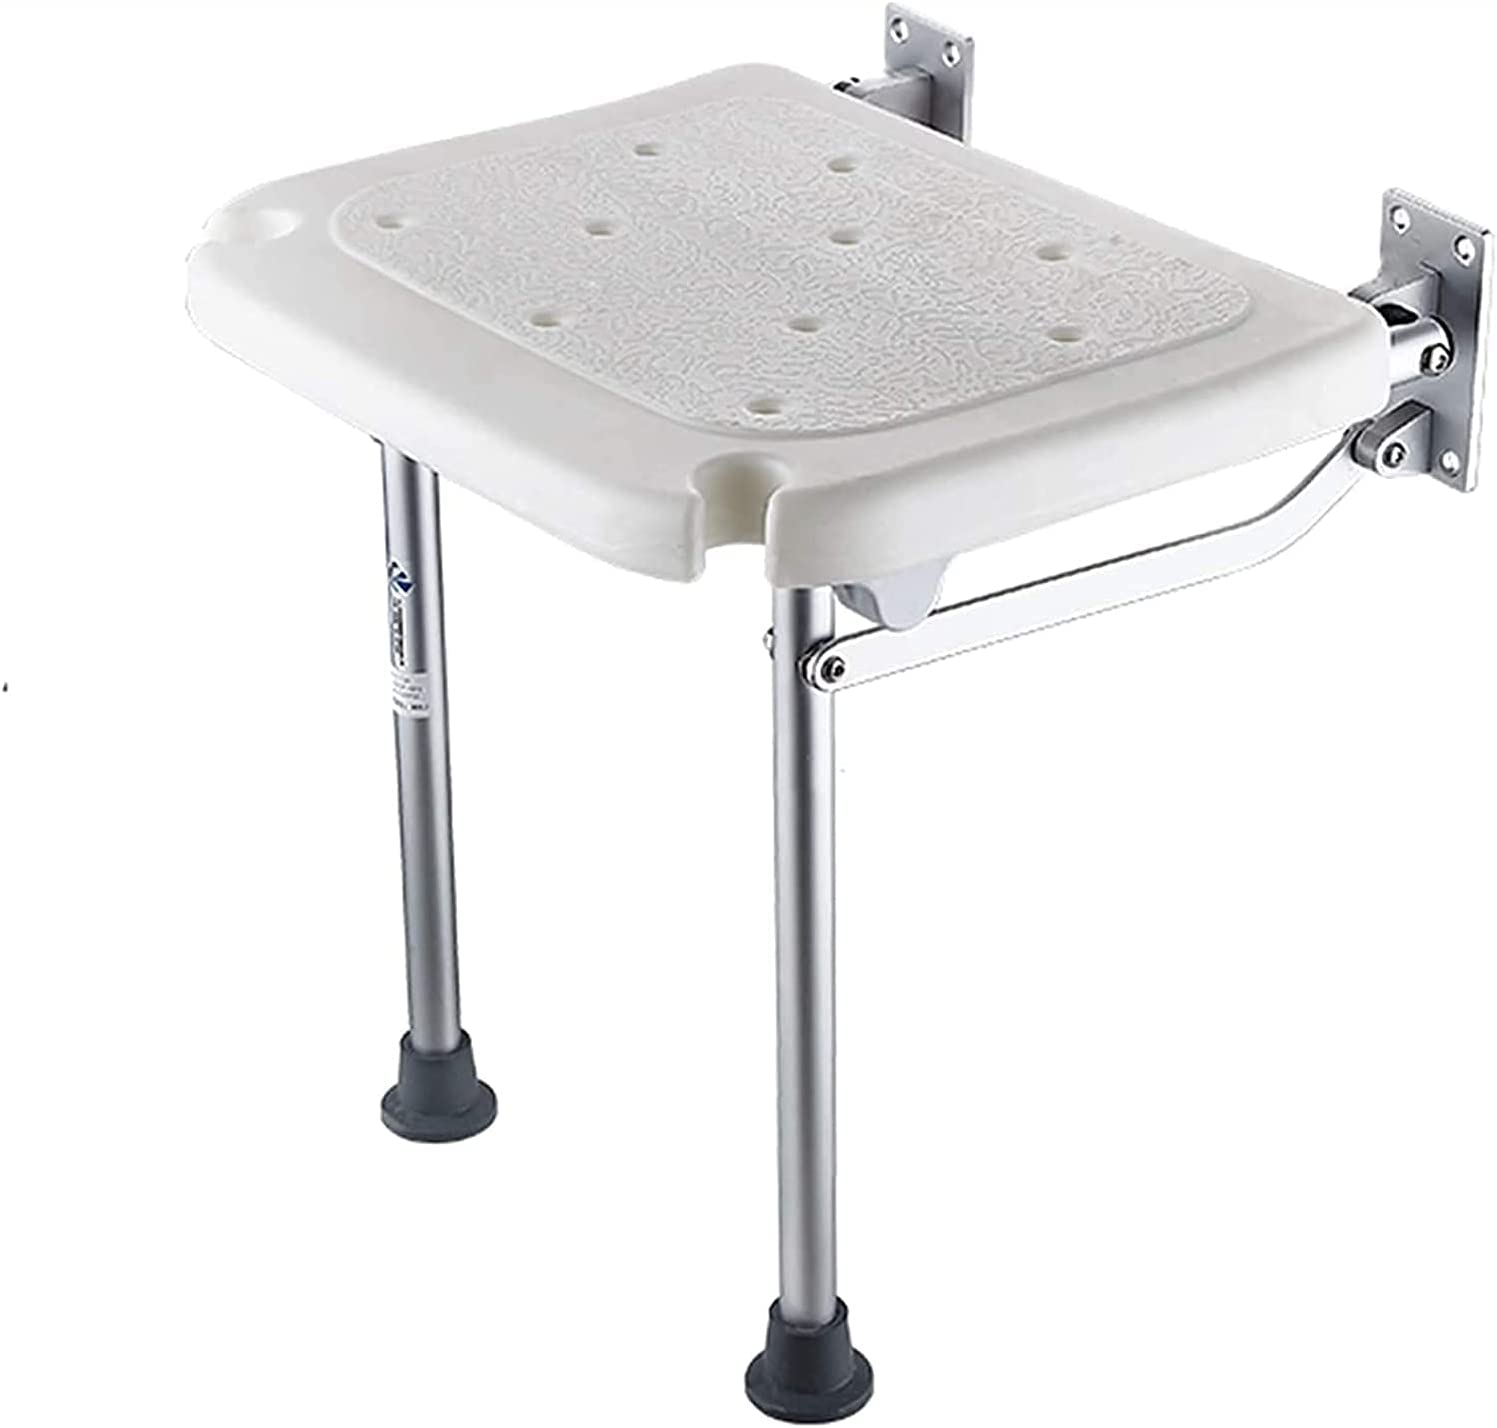 In Dedication stock Wall-Mounted Steel Shower Chair Seat Rubber with Folding